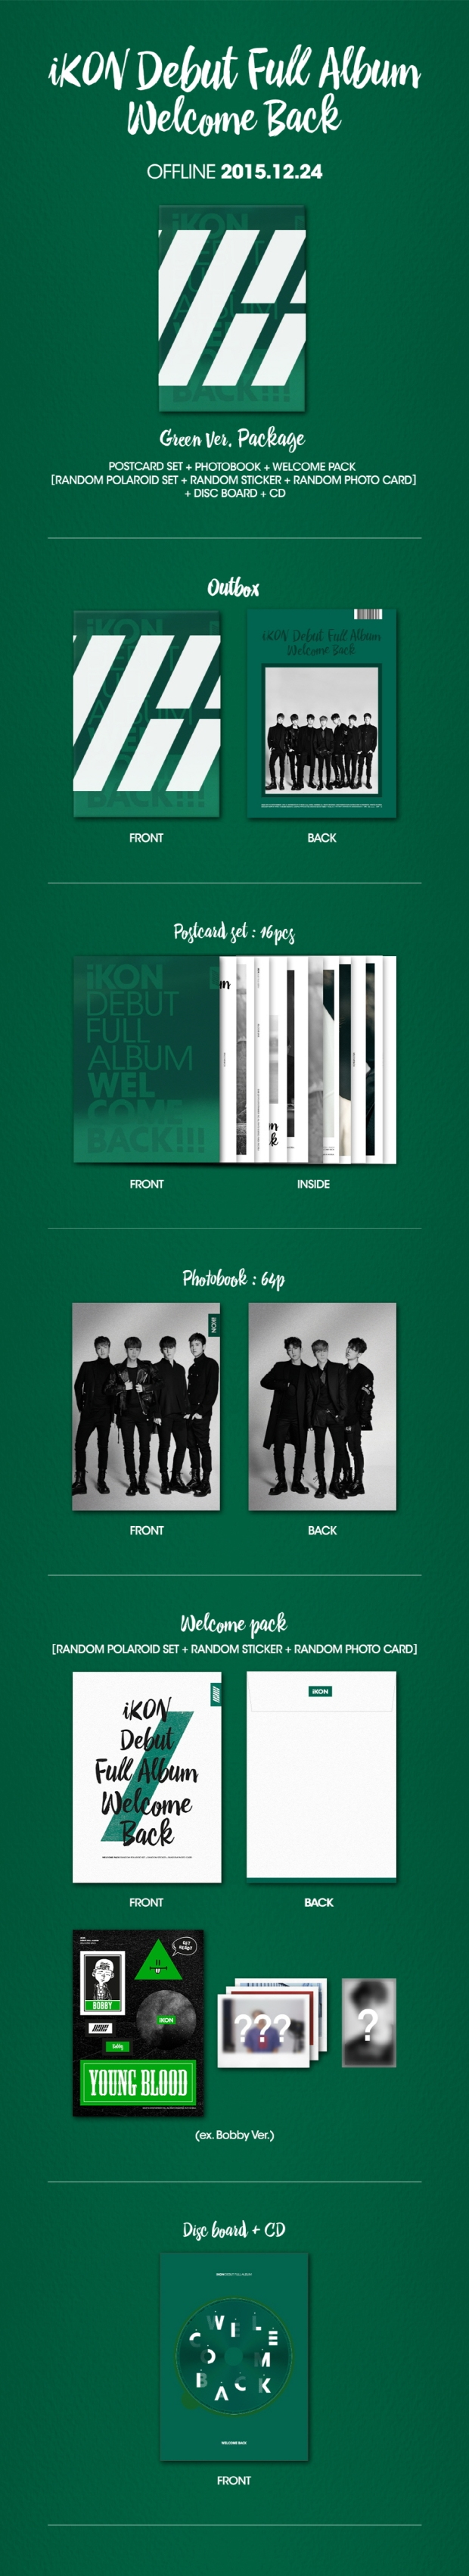 ikon_full_album_green_03